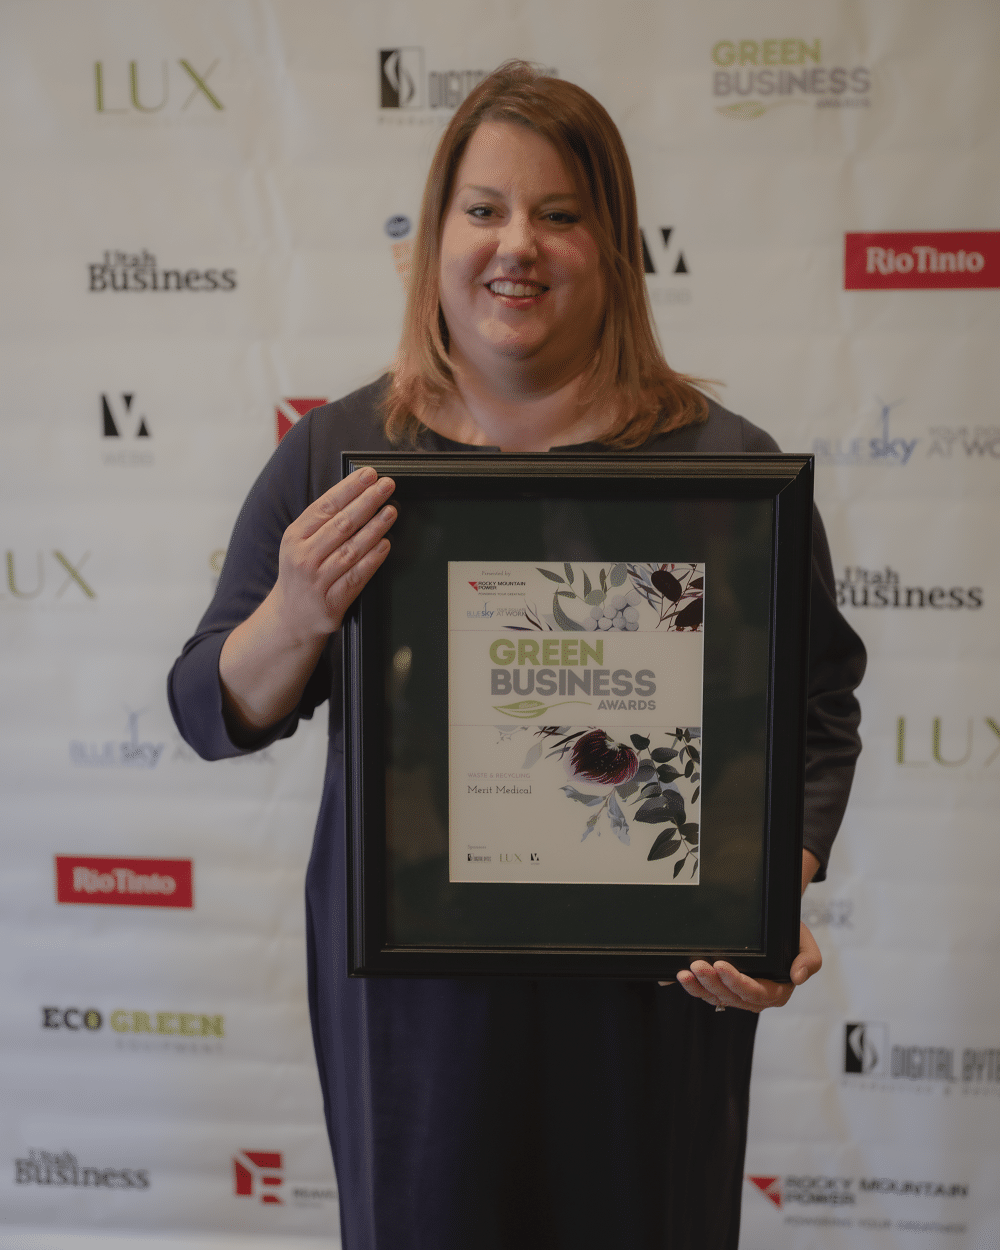 Merit Medical - Alisha Jeraud - Green Business Award 2019 - Utah Business